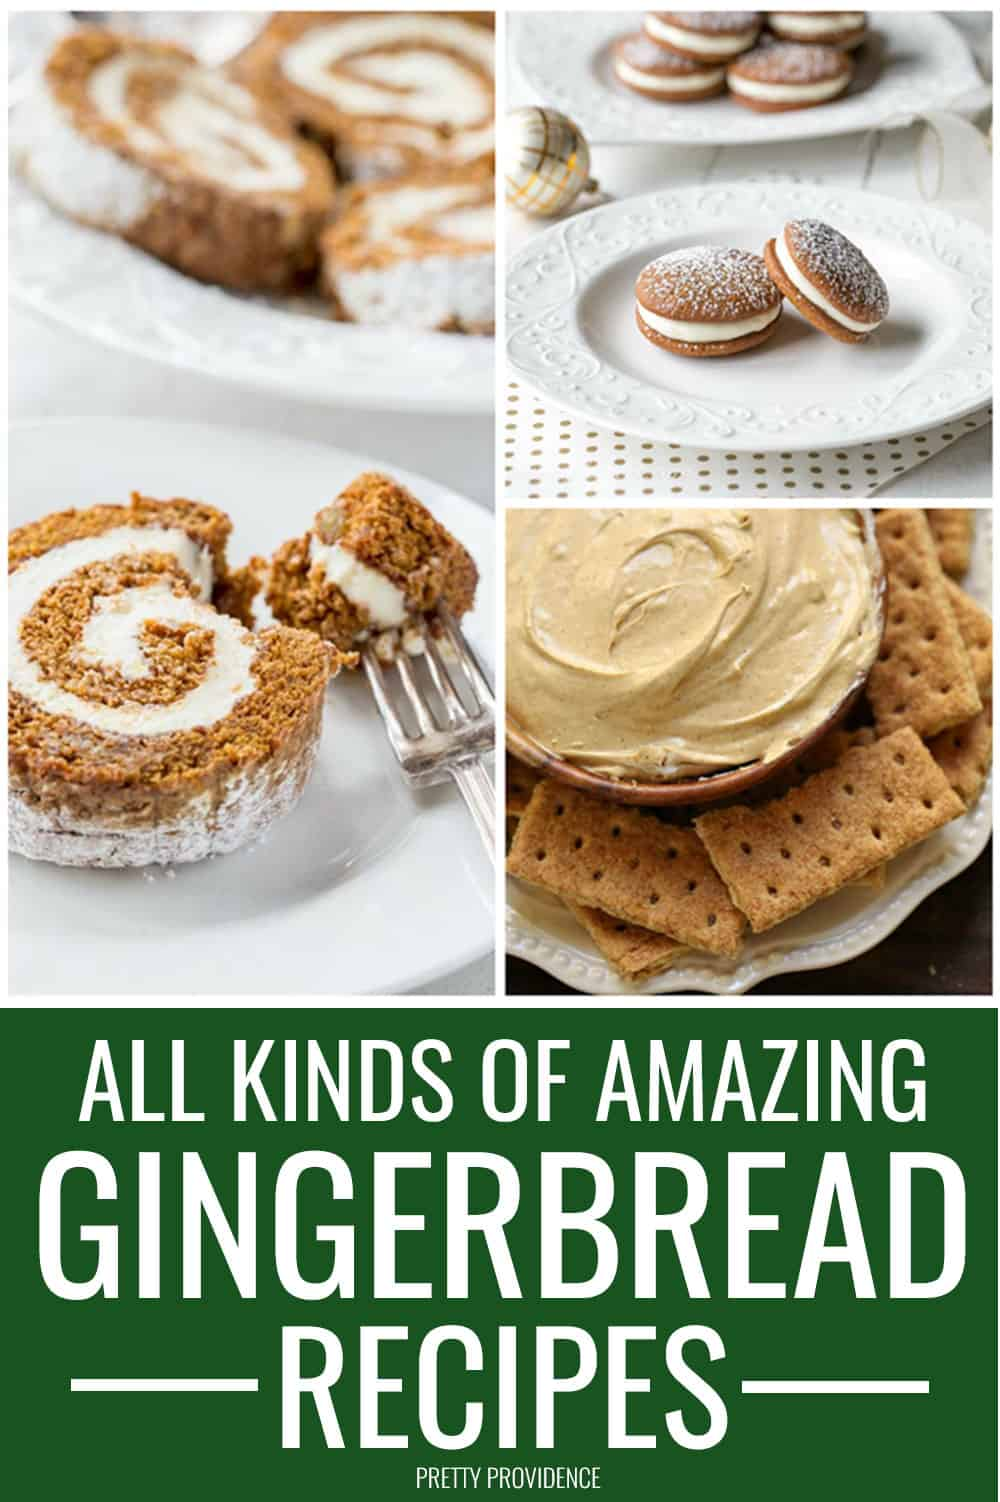 all kinds of amazing gingerbread recipes to try this Christmas season! No-bake gingerbread treats, gingerbread cookies, cakes and more! #gingerbread #christmas #recipes #gingerbreadrecipes #christmastreats #christmasrecipes #christmasfood #partyfood #festive #easyrecipe #recipeideas